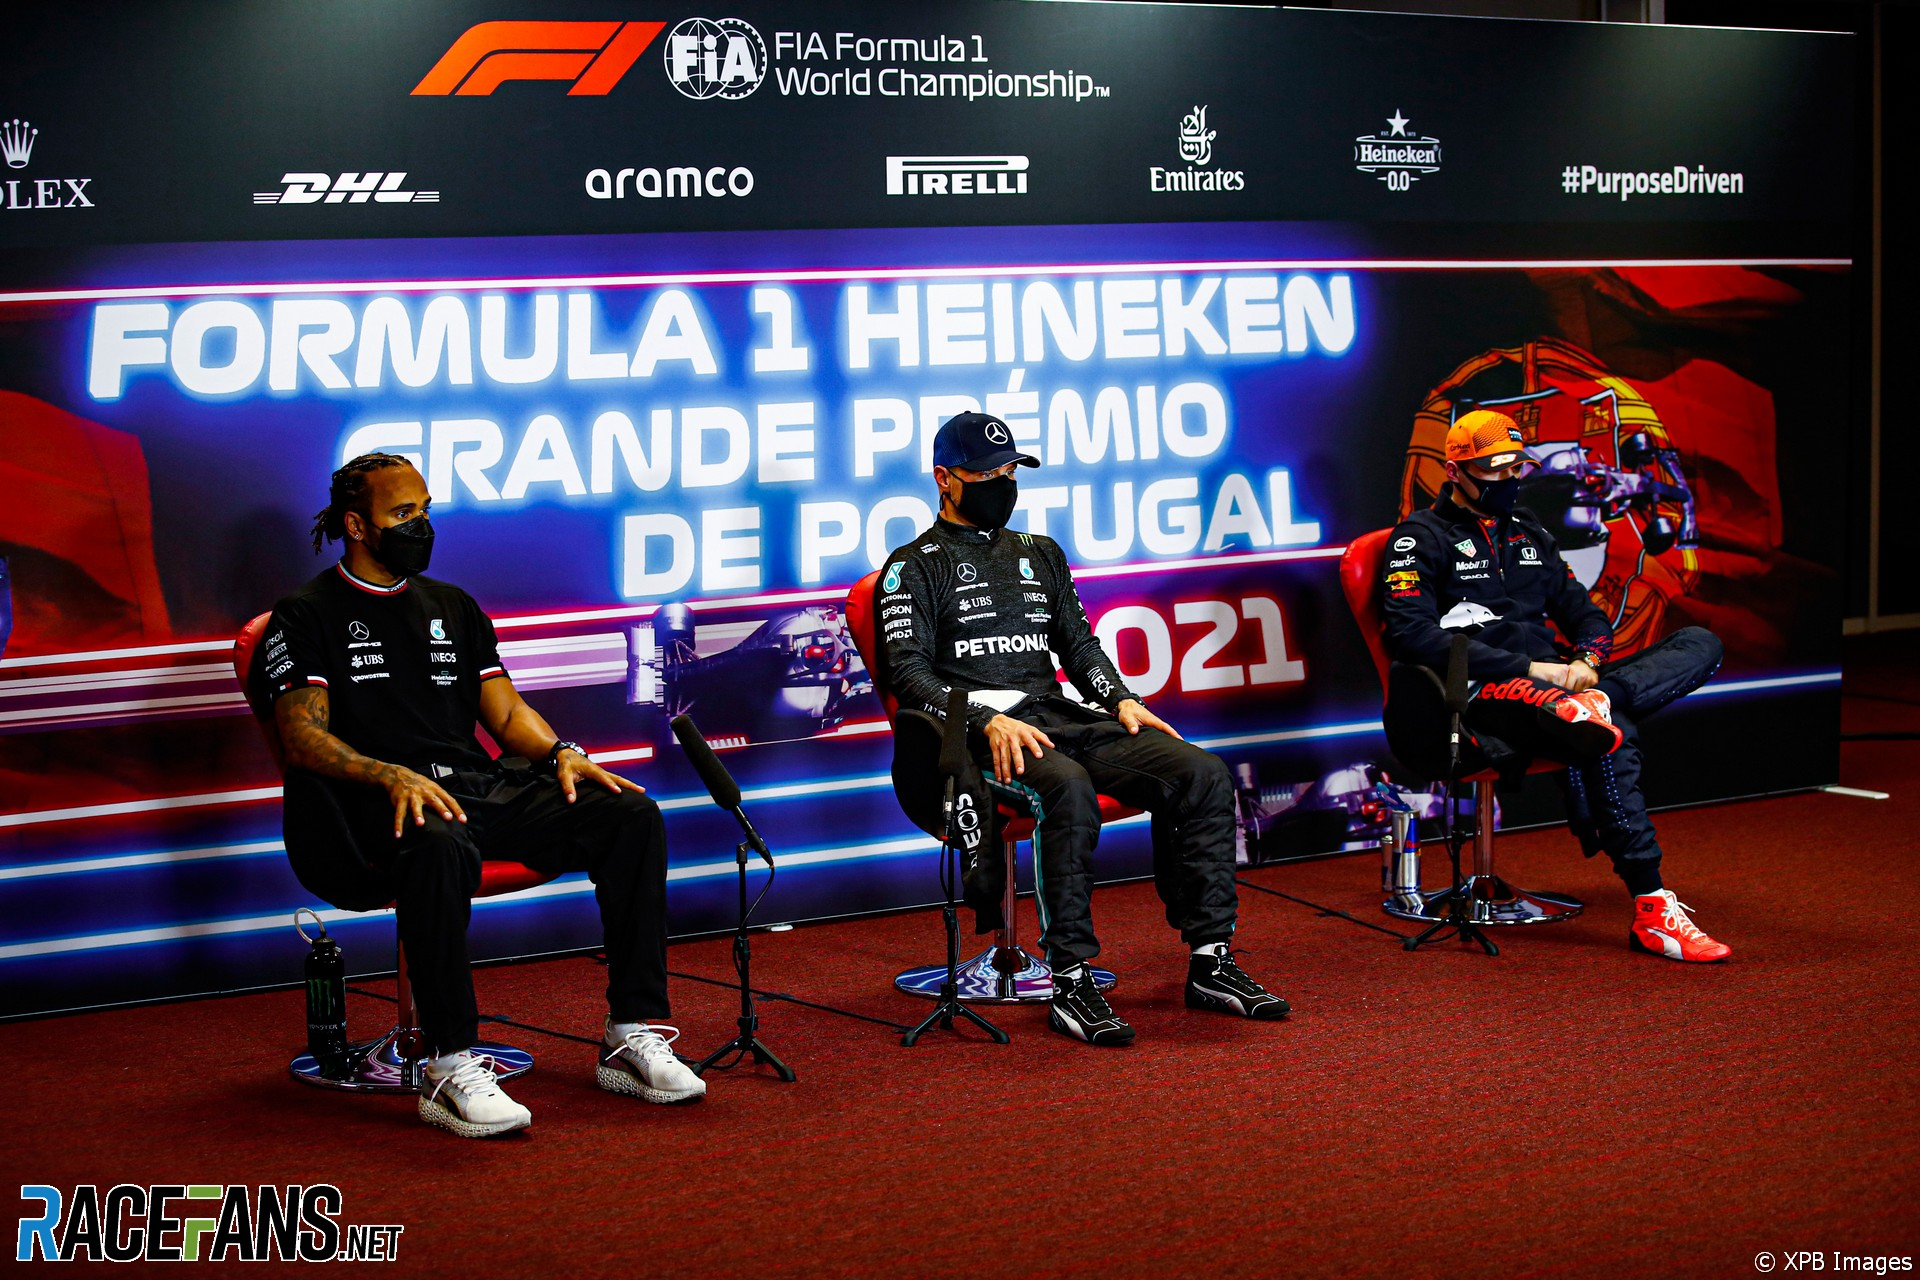 The Top Three Qualifiers : Second Place Lewis Hamilton, Pole Position Valtteri Bottas and Third Place Max Verstappen